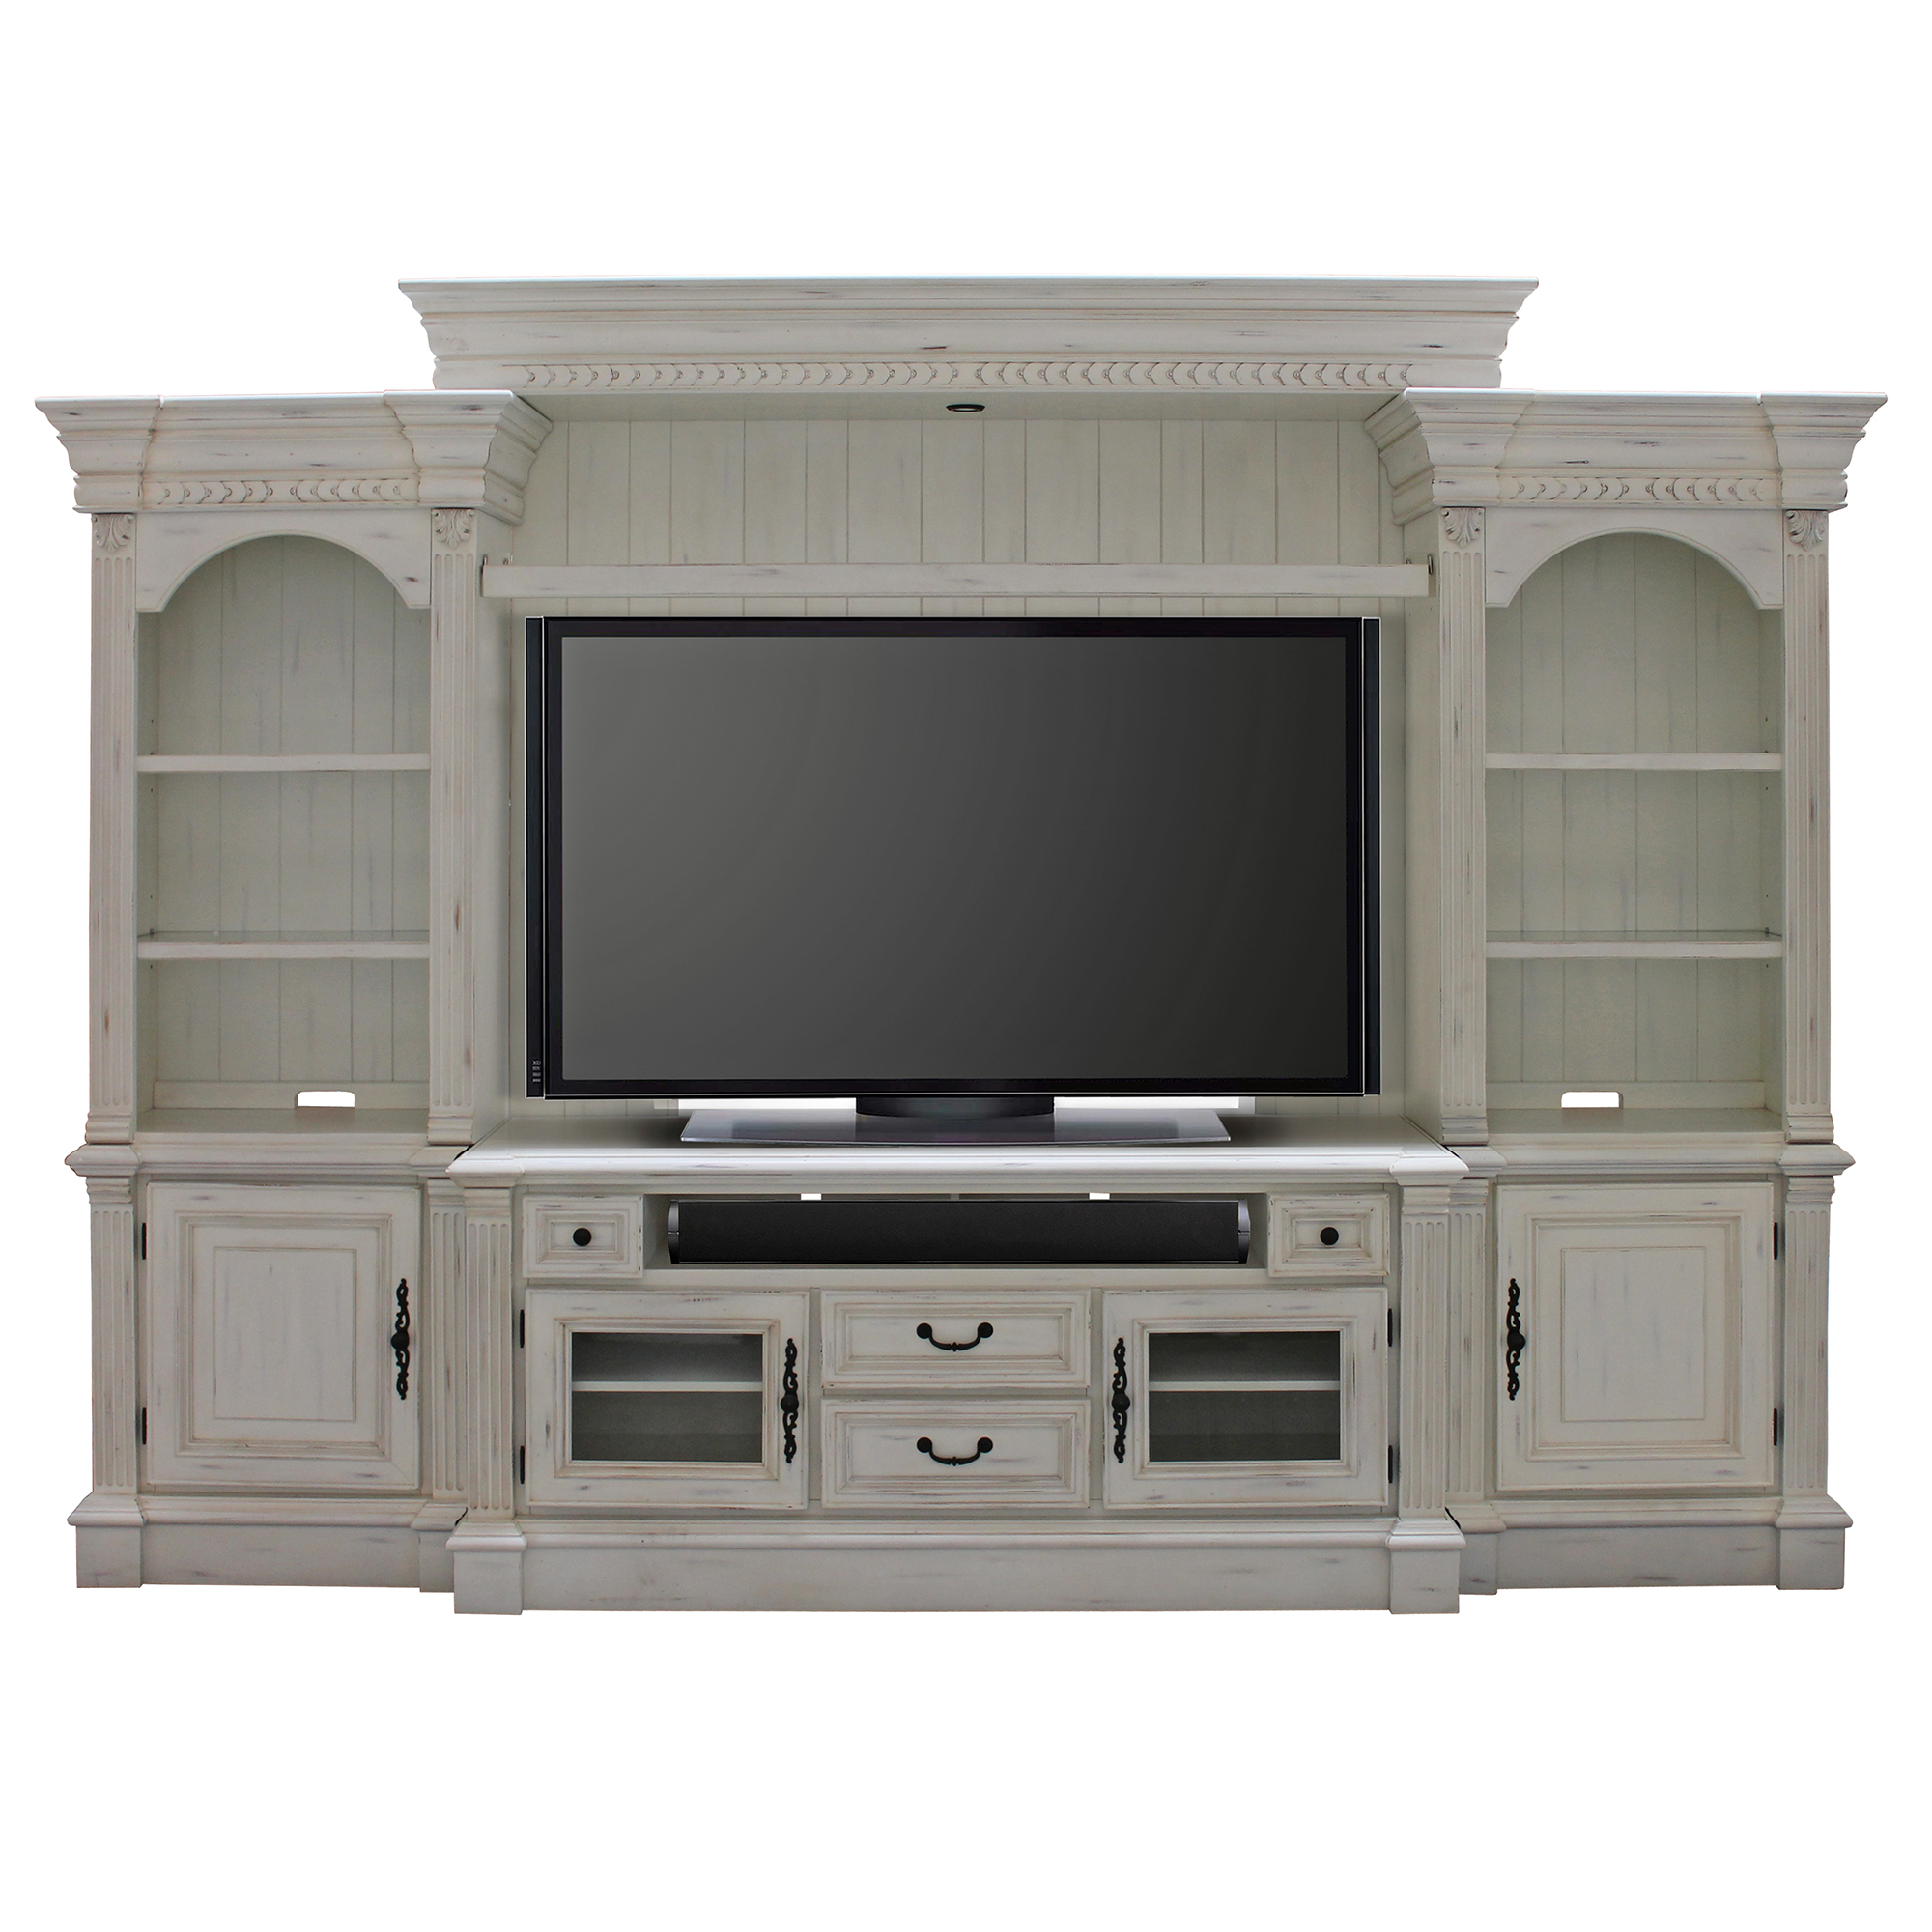 Fremont 4 Piece Entertainment Wall Unit In Vintage Burnished White Open Box